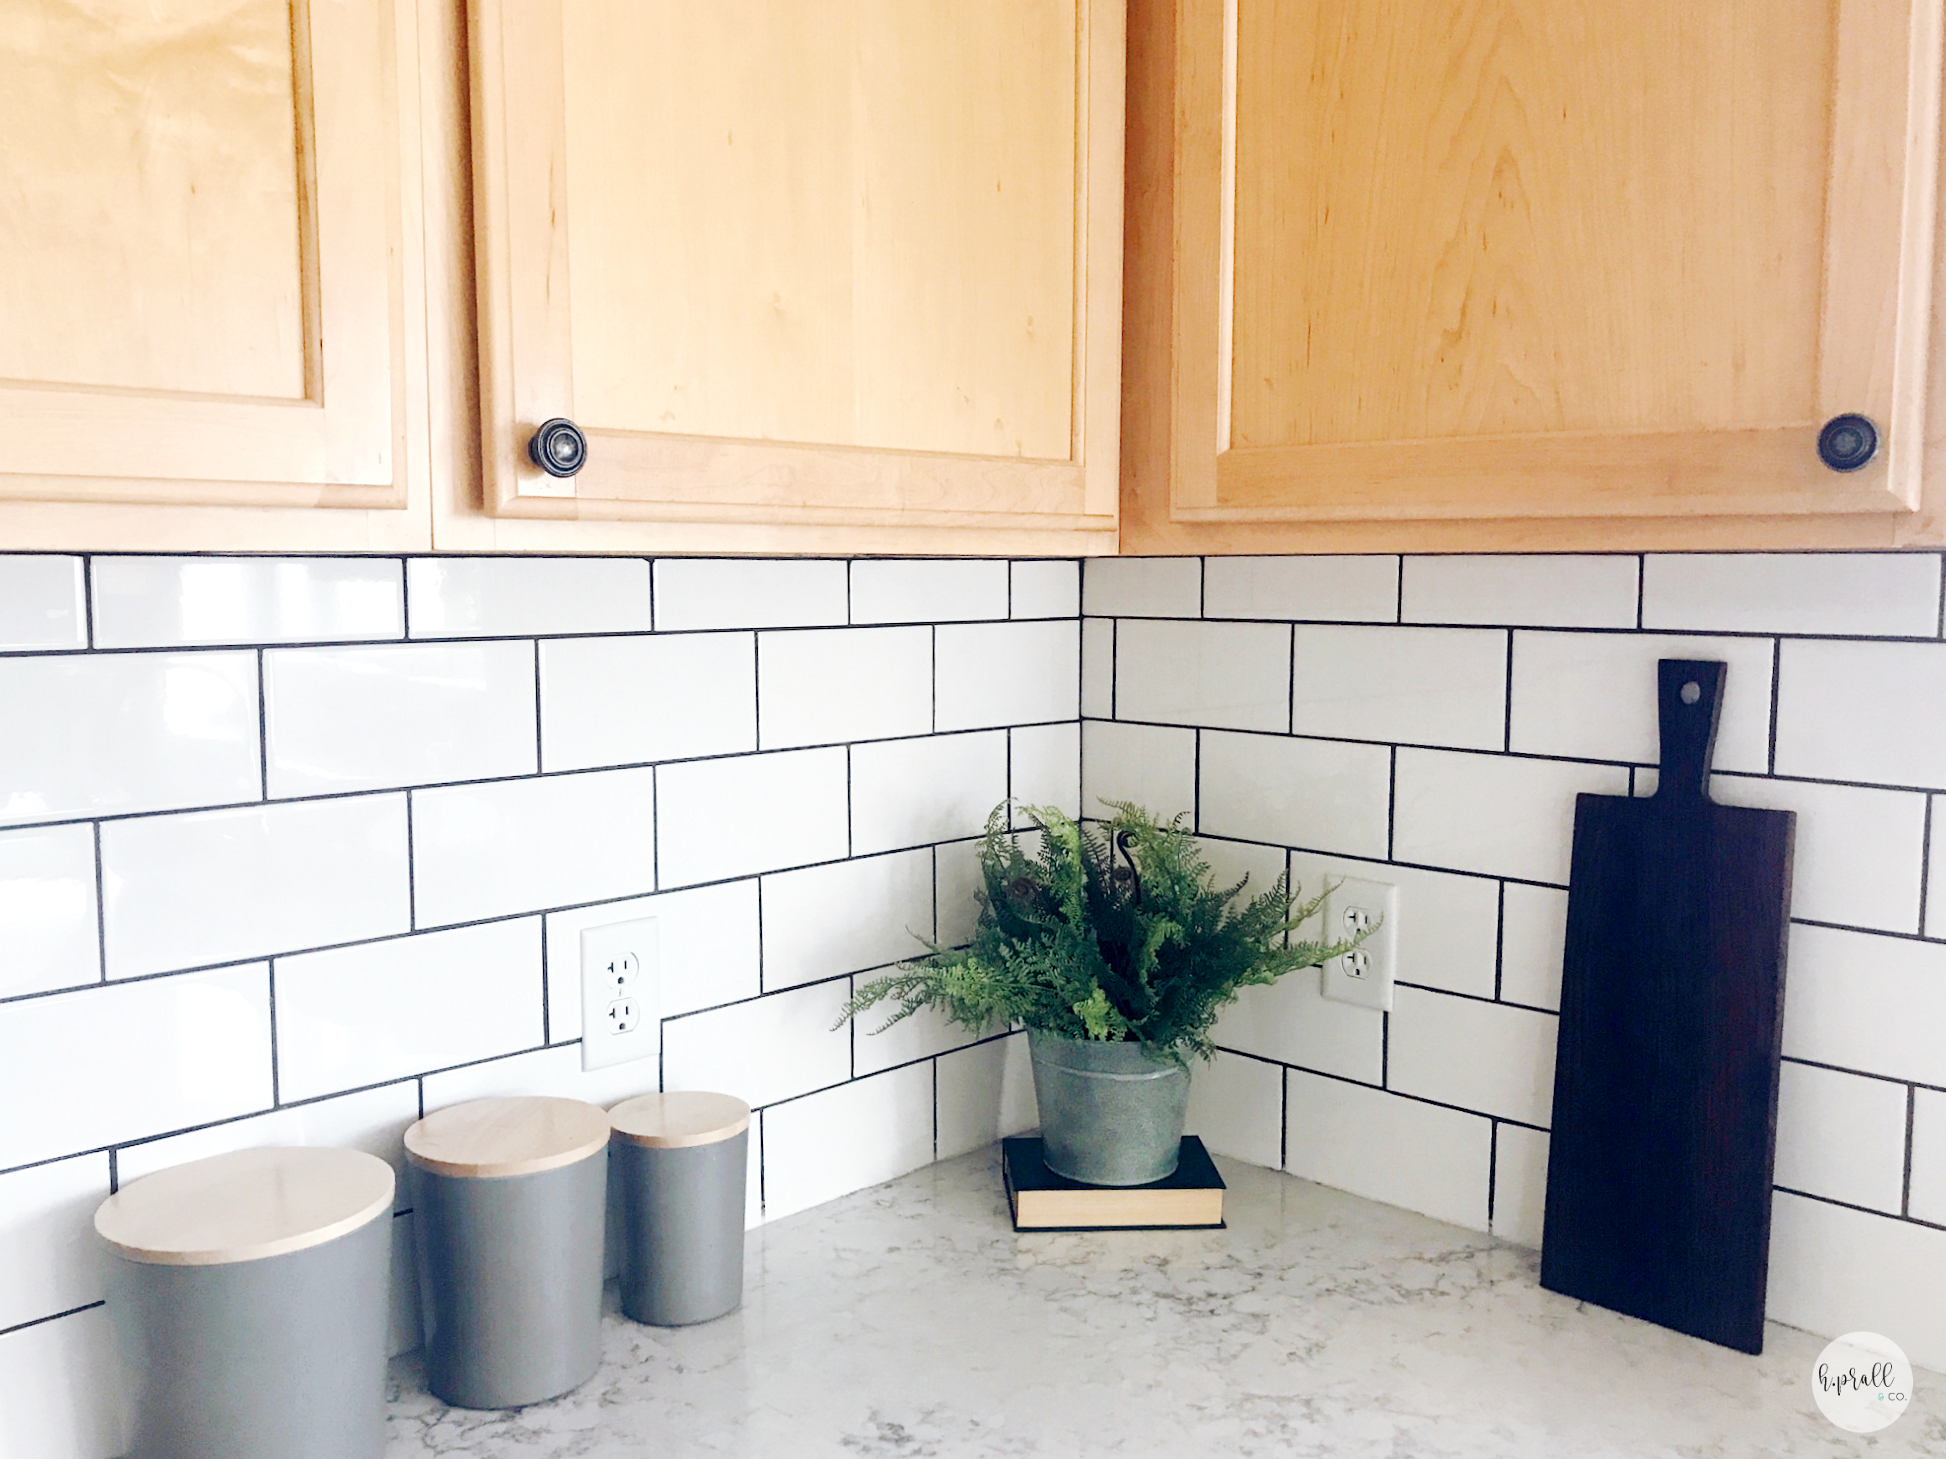 Kitchen counter styling from H.Prall & Co.